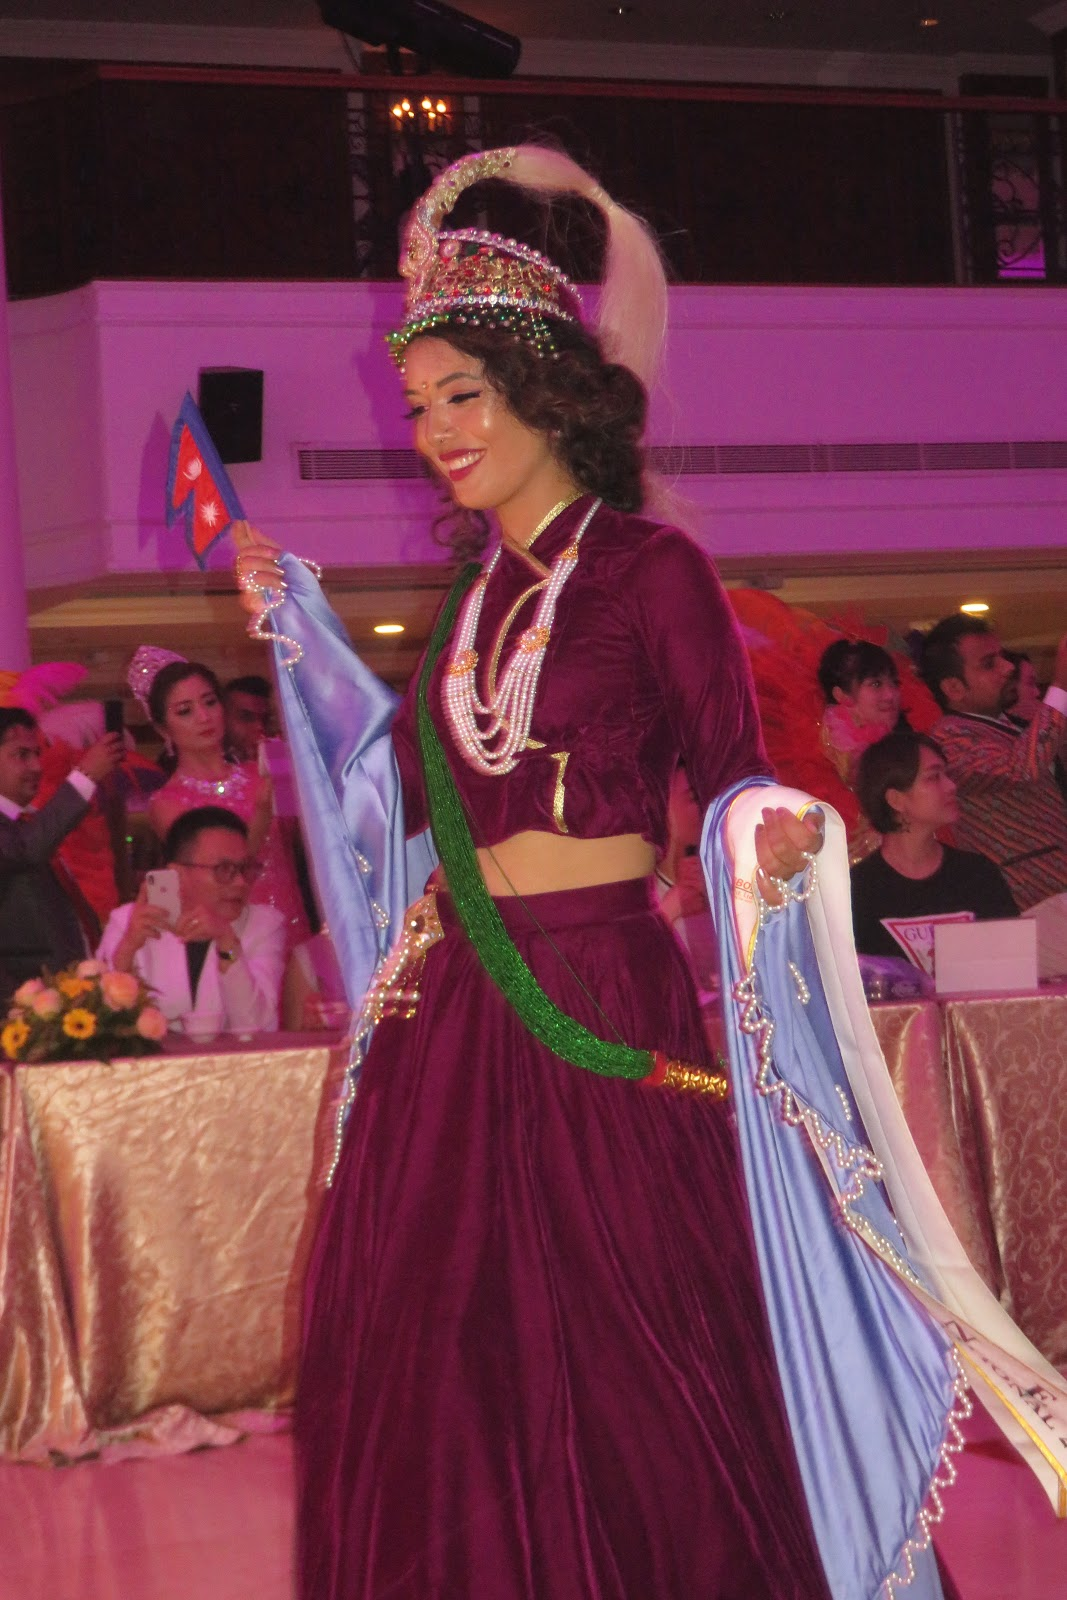 Kee Hua Chee Live!: DAY 2 OF TKS MRS INTERNATIONAL PAGEANT IN